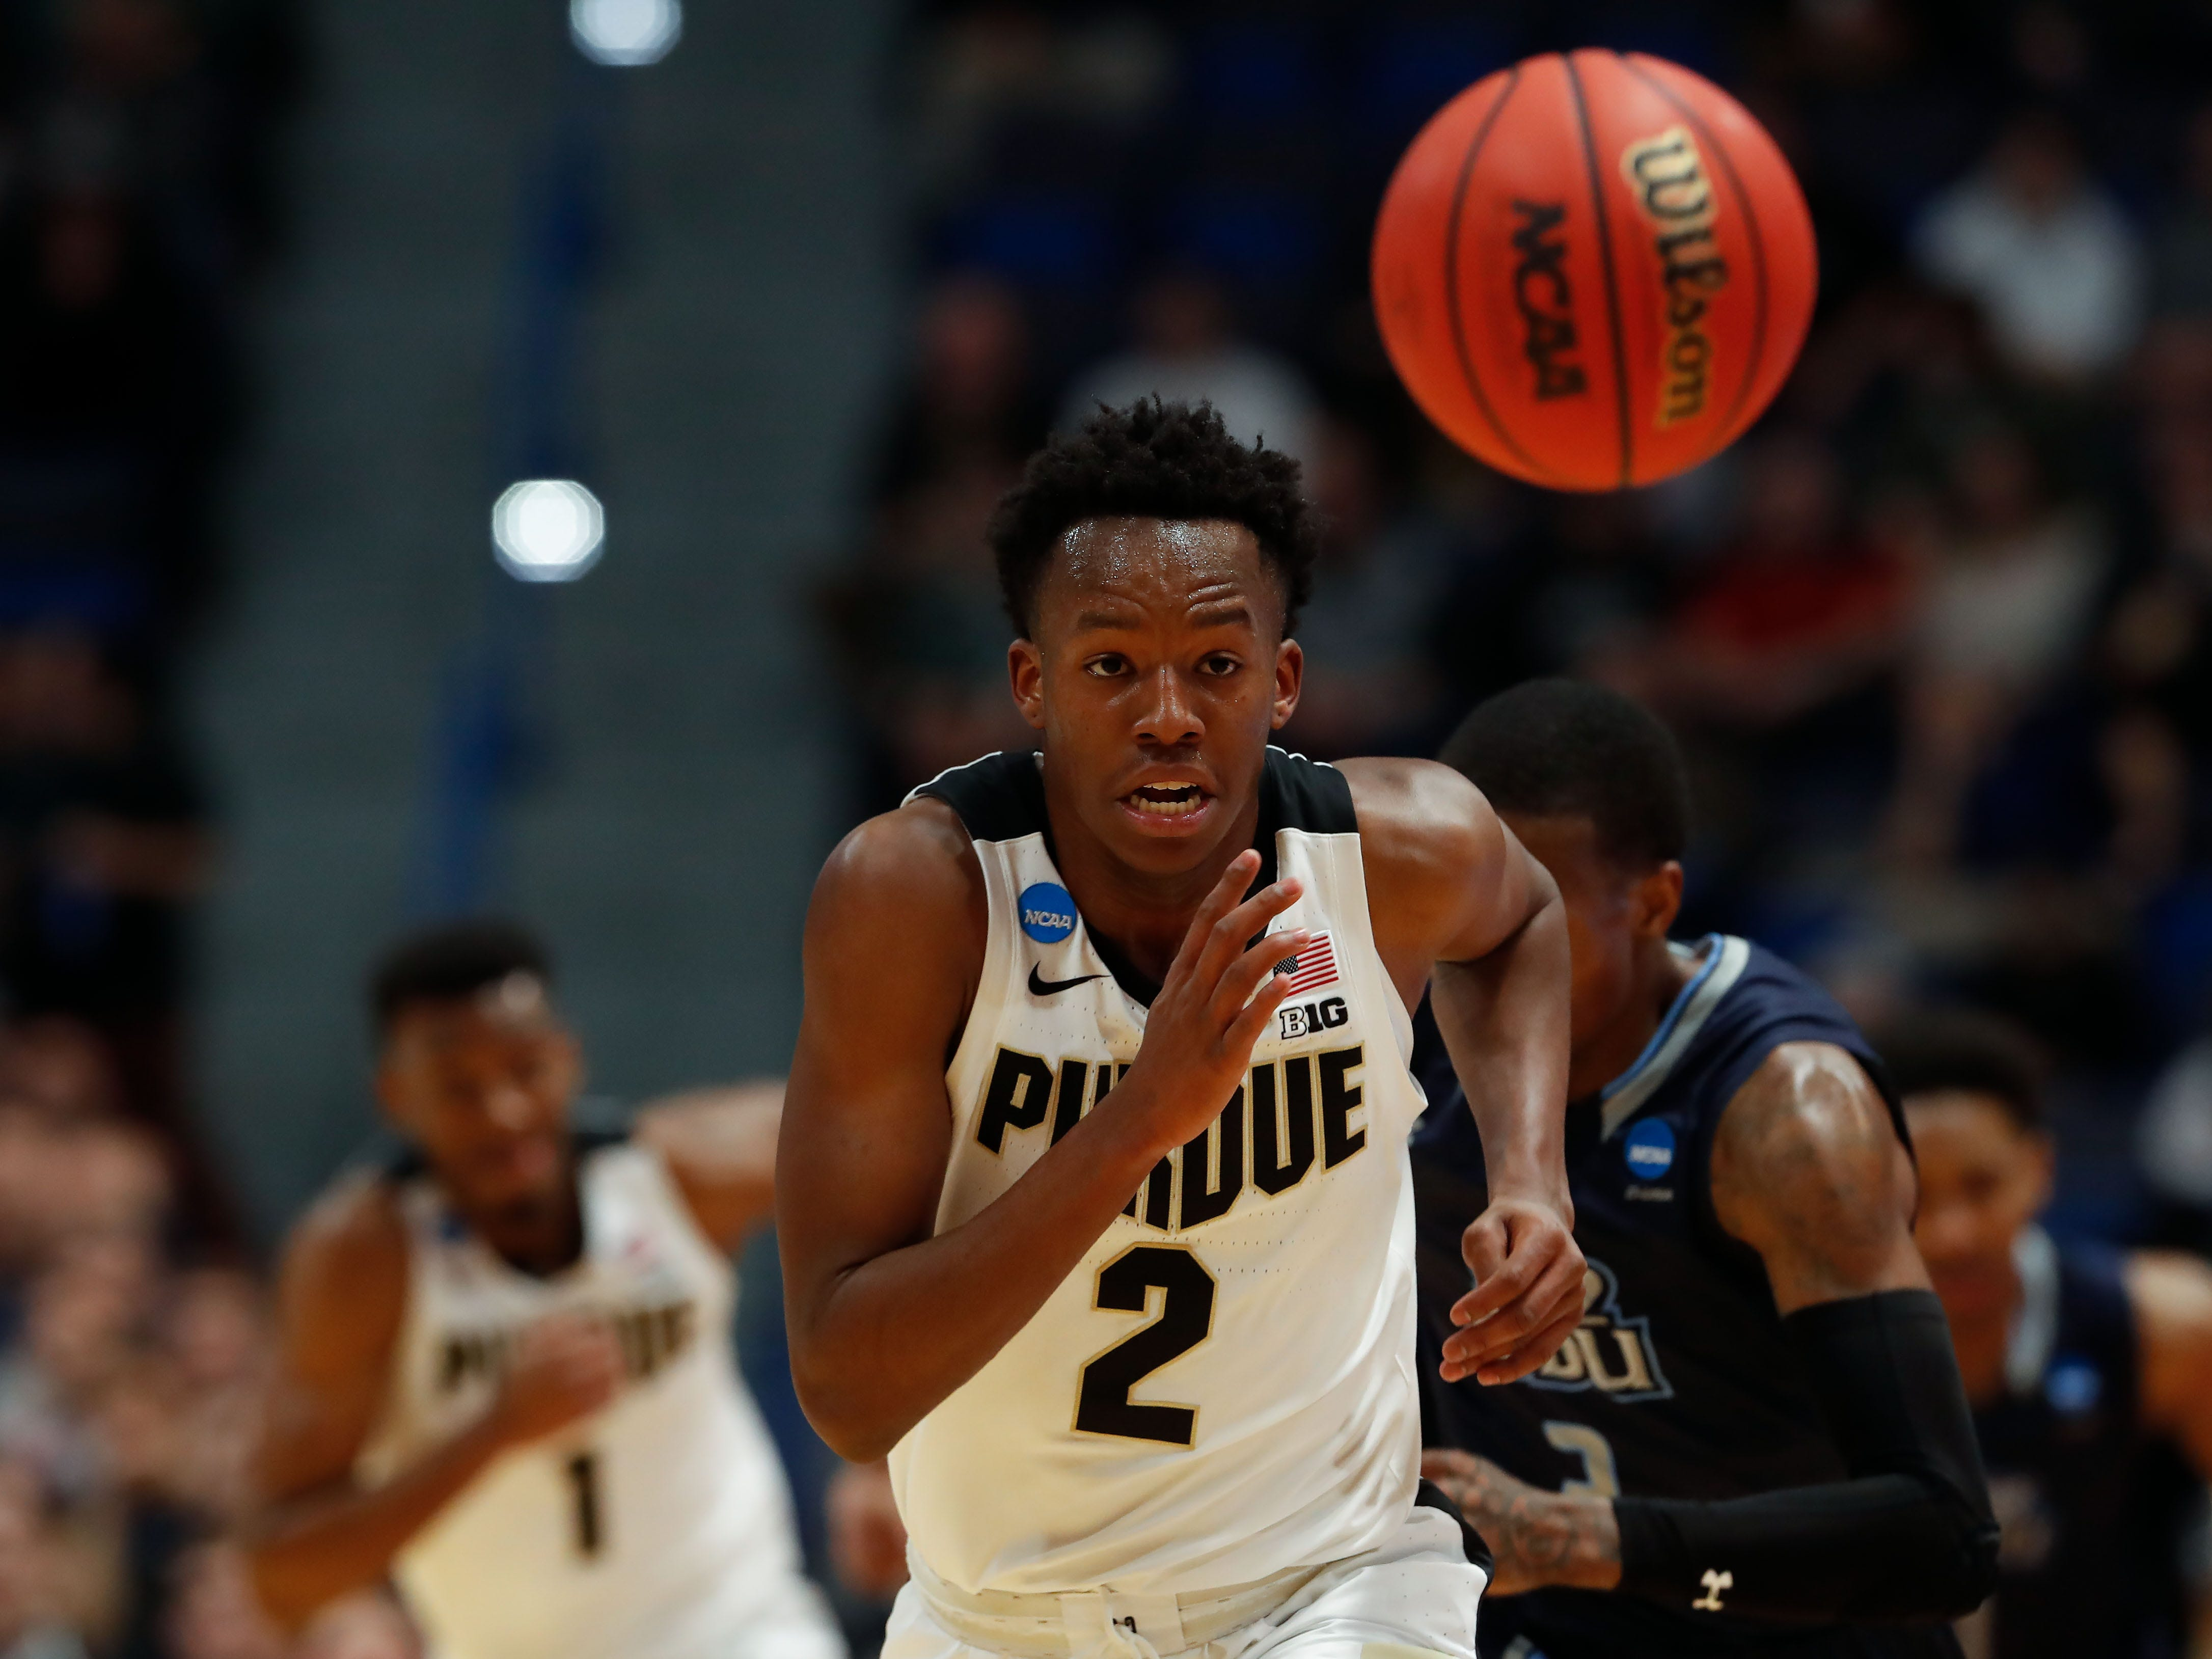 Purdue Boilermakers guard Eric Hunter Jr. (2) chases down a loose ball during the first half of a game against the Old Dominion Monarchs in the first round of the 2019 NCAA Tournament at XL Center.